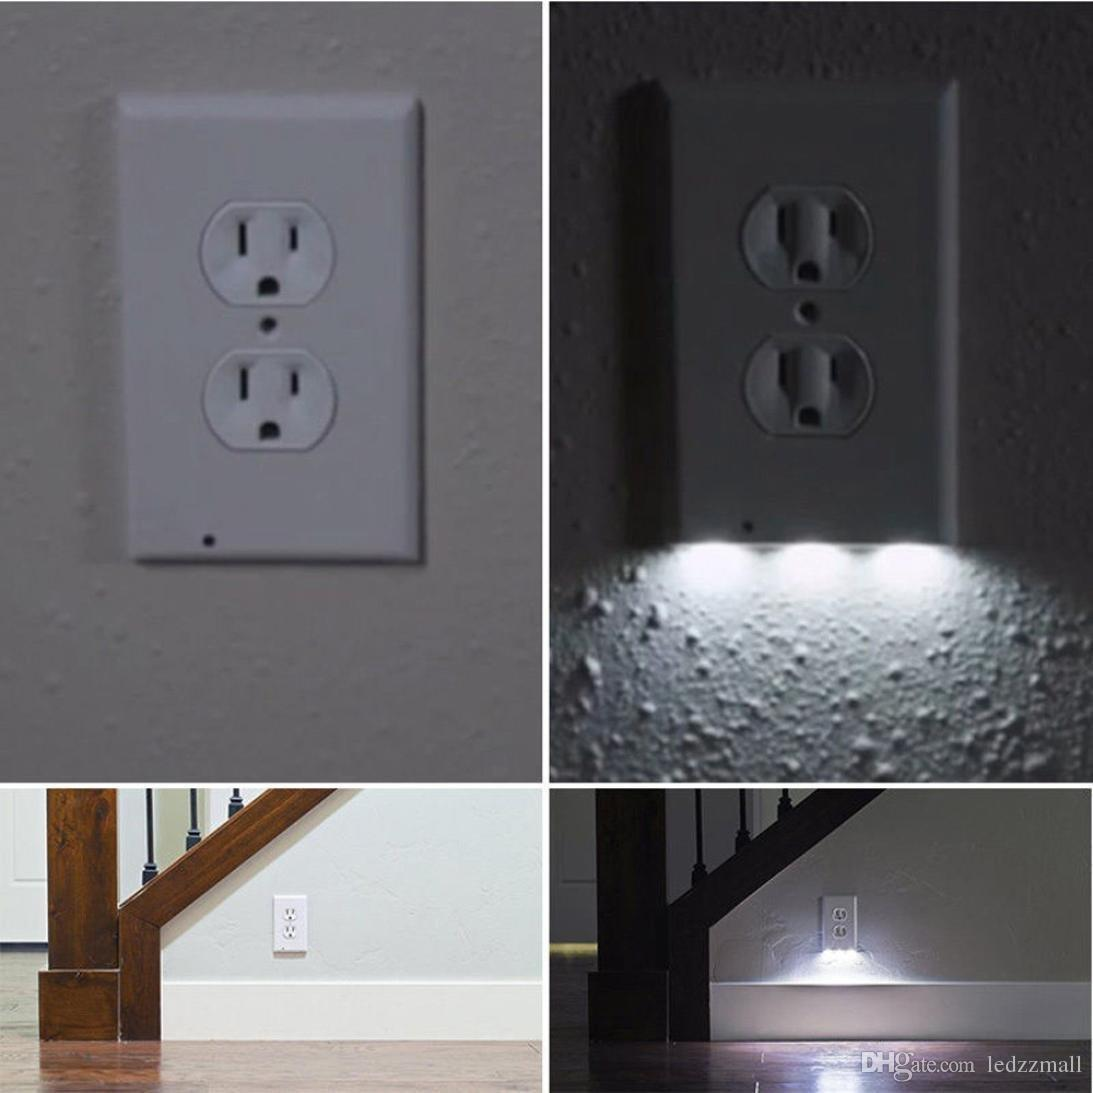 2018 led wall outlet night light plug cover led night angel wall 2018 led wall outlet night light plug cover led night angel wall outlet face hallway bathroom light white from ledzzmall 453 dhgate mozeypictures Image collections